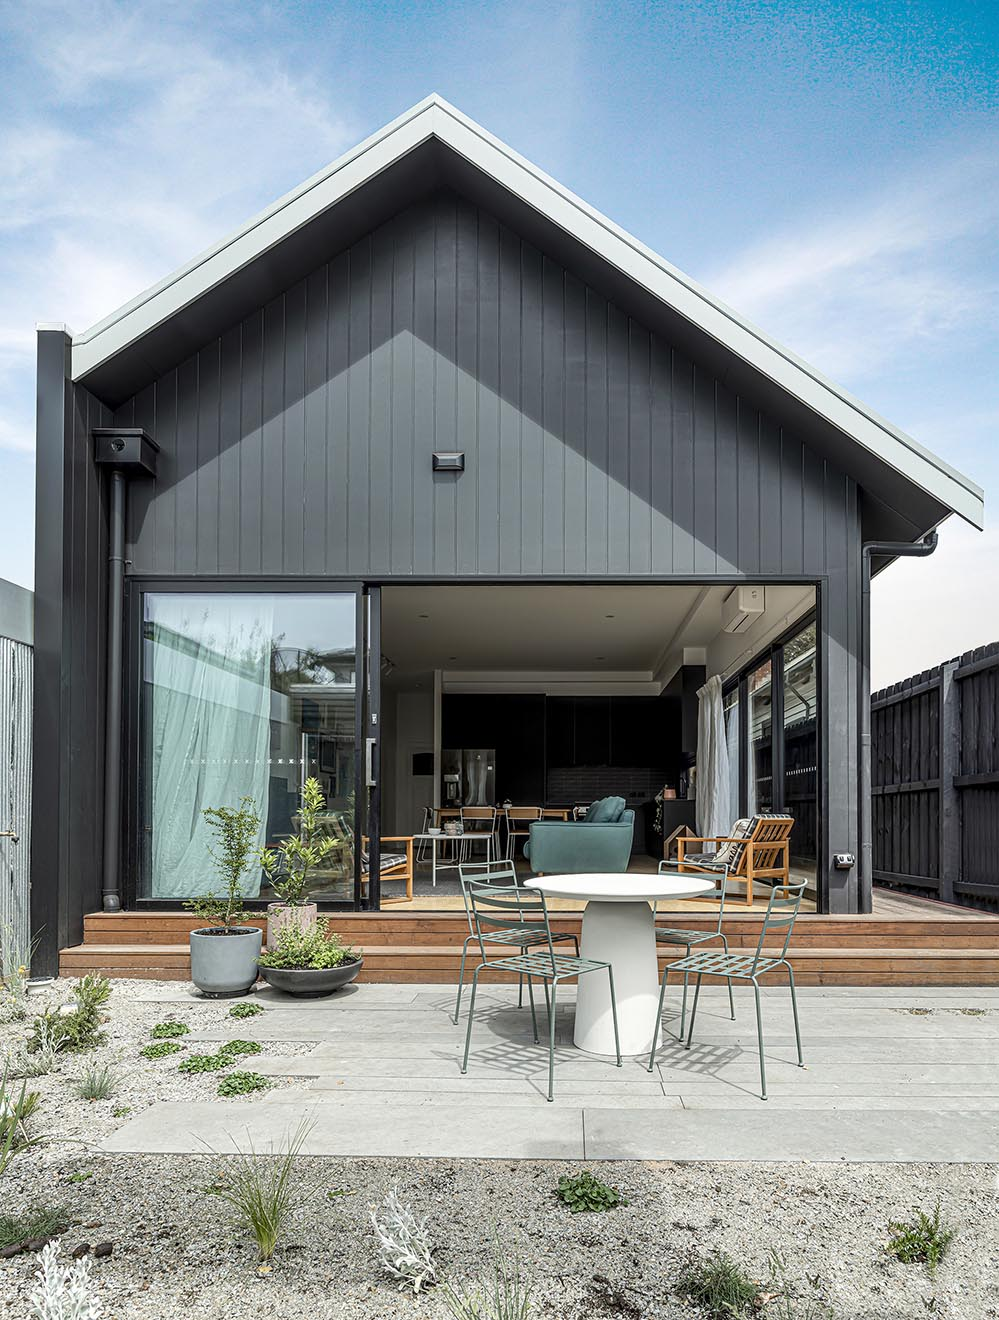 Garden Studio & Home Extension Gallery | Garden Studios Melbourne